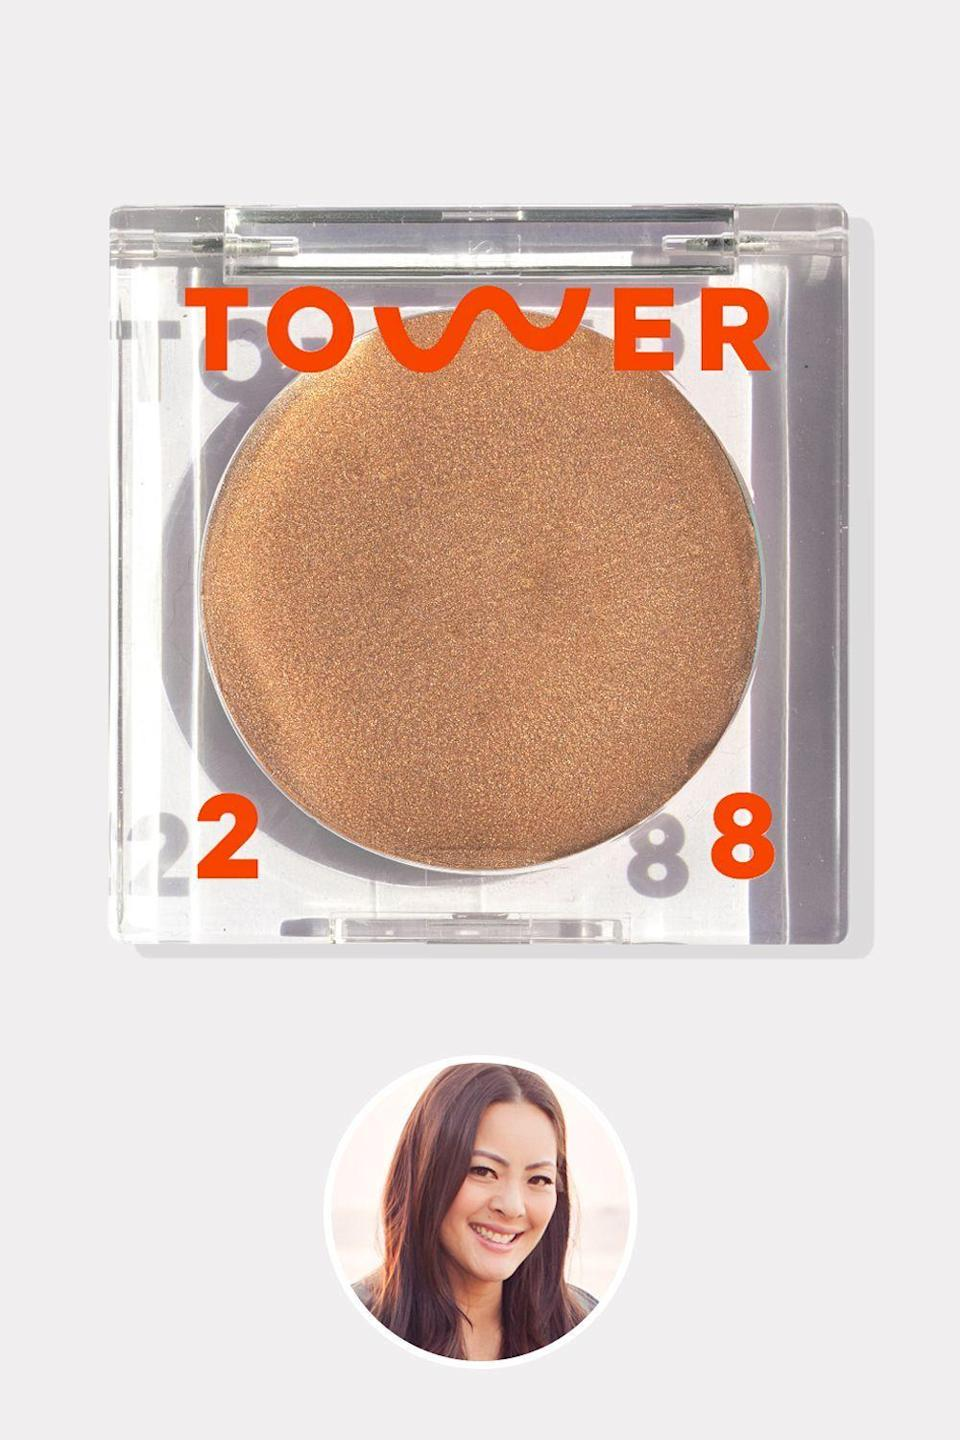 """<p><strong>Tower 28</strong></p><p>tower28beauty.com</p><p><strong>$20.00</strong></p><p><a href=""""https://go.redirectingat.com?id=74968X1596630&url=https%3A%2F%2Fwww.tower28beauty.com%2Fproducts%2Fbronzino-illuminating-bronzer%3Fvariant%3D39293080338487&sref=https%3A%2F%2Fwww.oprahdaily.com%2Fbeauty%2Fskin-makeup%2Fg36454382%2Fasian-beauty-brands%2F"""" rel=""""nofollow noopener"""" target=""""_blank"""" data-ylk=""""slk:Shop Now"""" class=""""link rapid-noclick-resp"""">Shop Now</a></p><p>A good bronzer can be tough to find when you have dark skin—the colors are never quite right. That's not the case with Tower 28's buttery option, infused with mango butter and calming green tea. Even better: It's free of potentially irritating ingredients, a hugely important aspect of the line to founder Amy Liu, who has sensitive skin herself and couldn't find any clean cosmetic brands that work on her own complexion.</p>"""